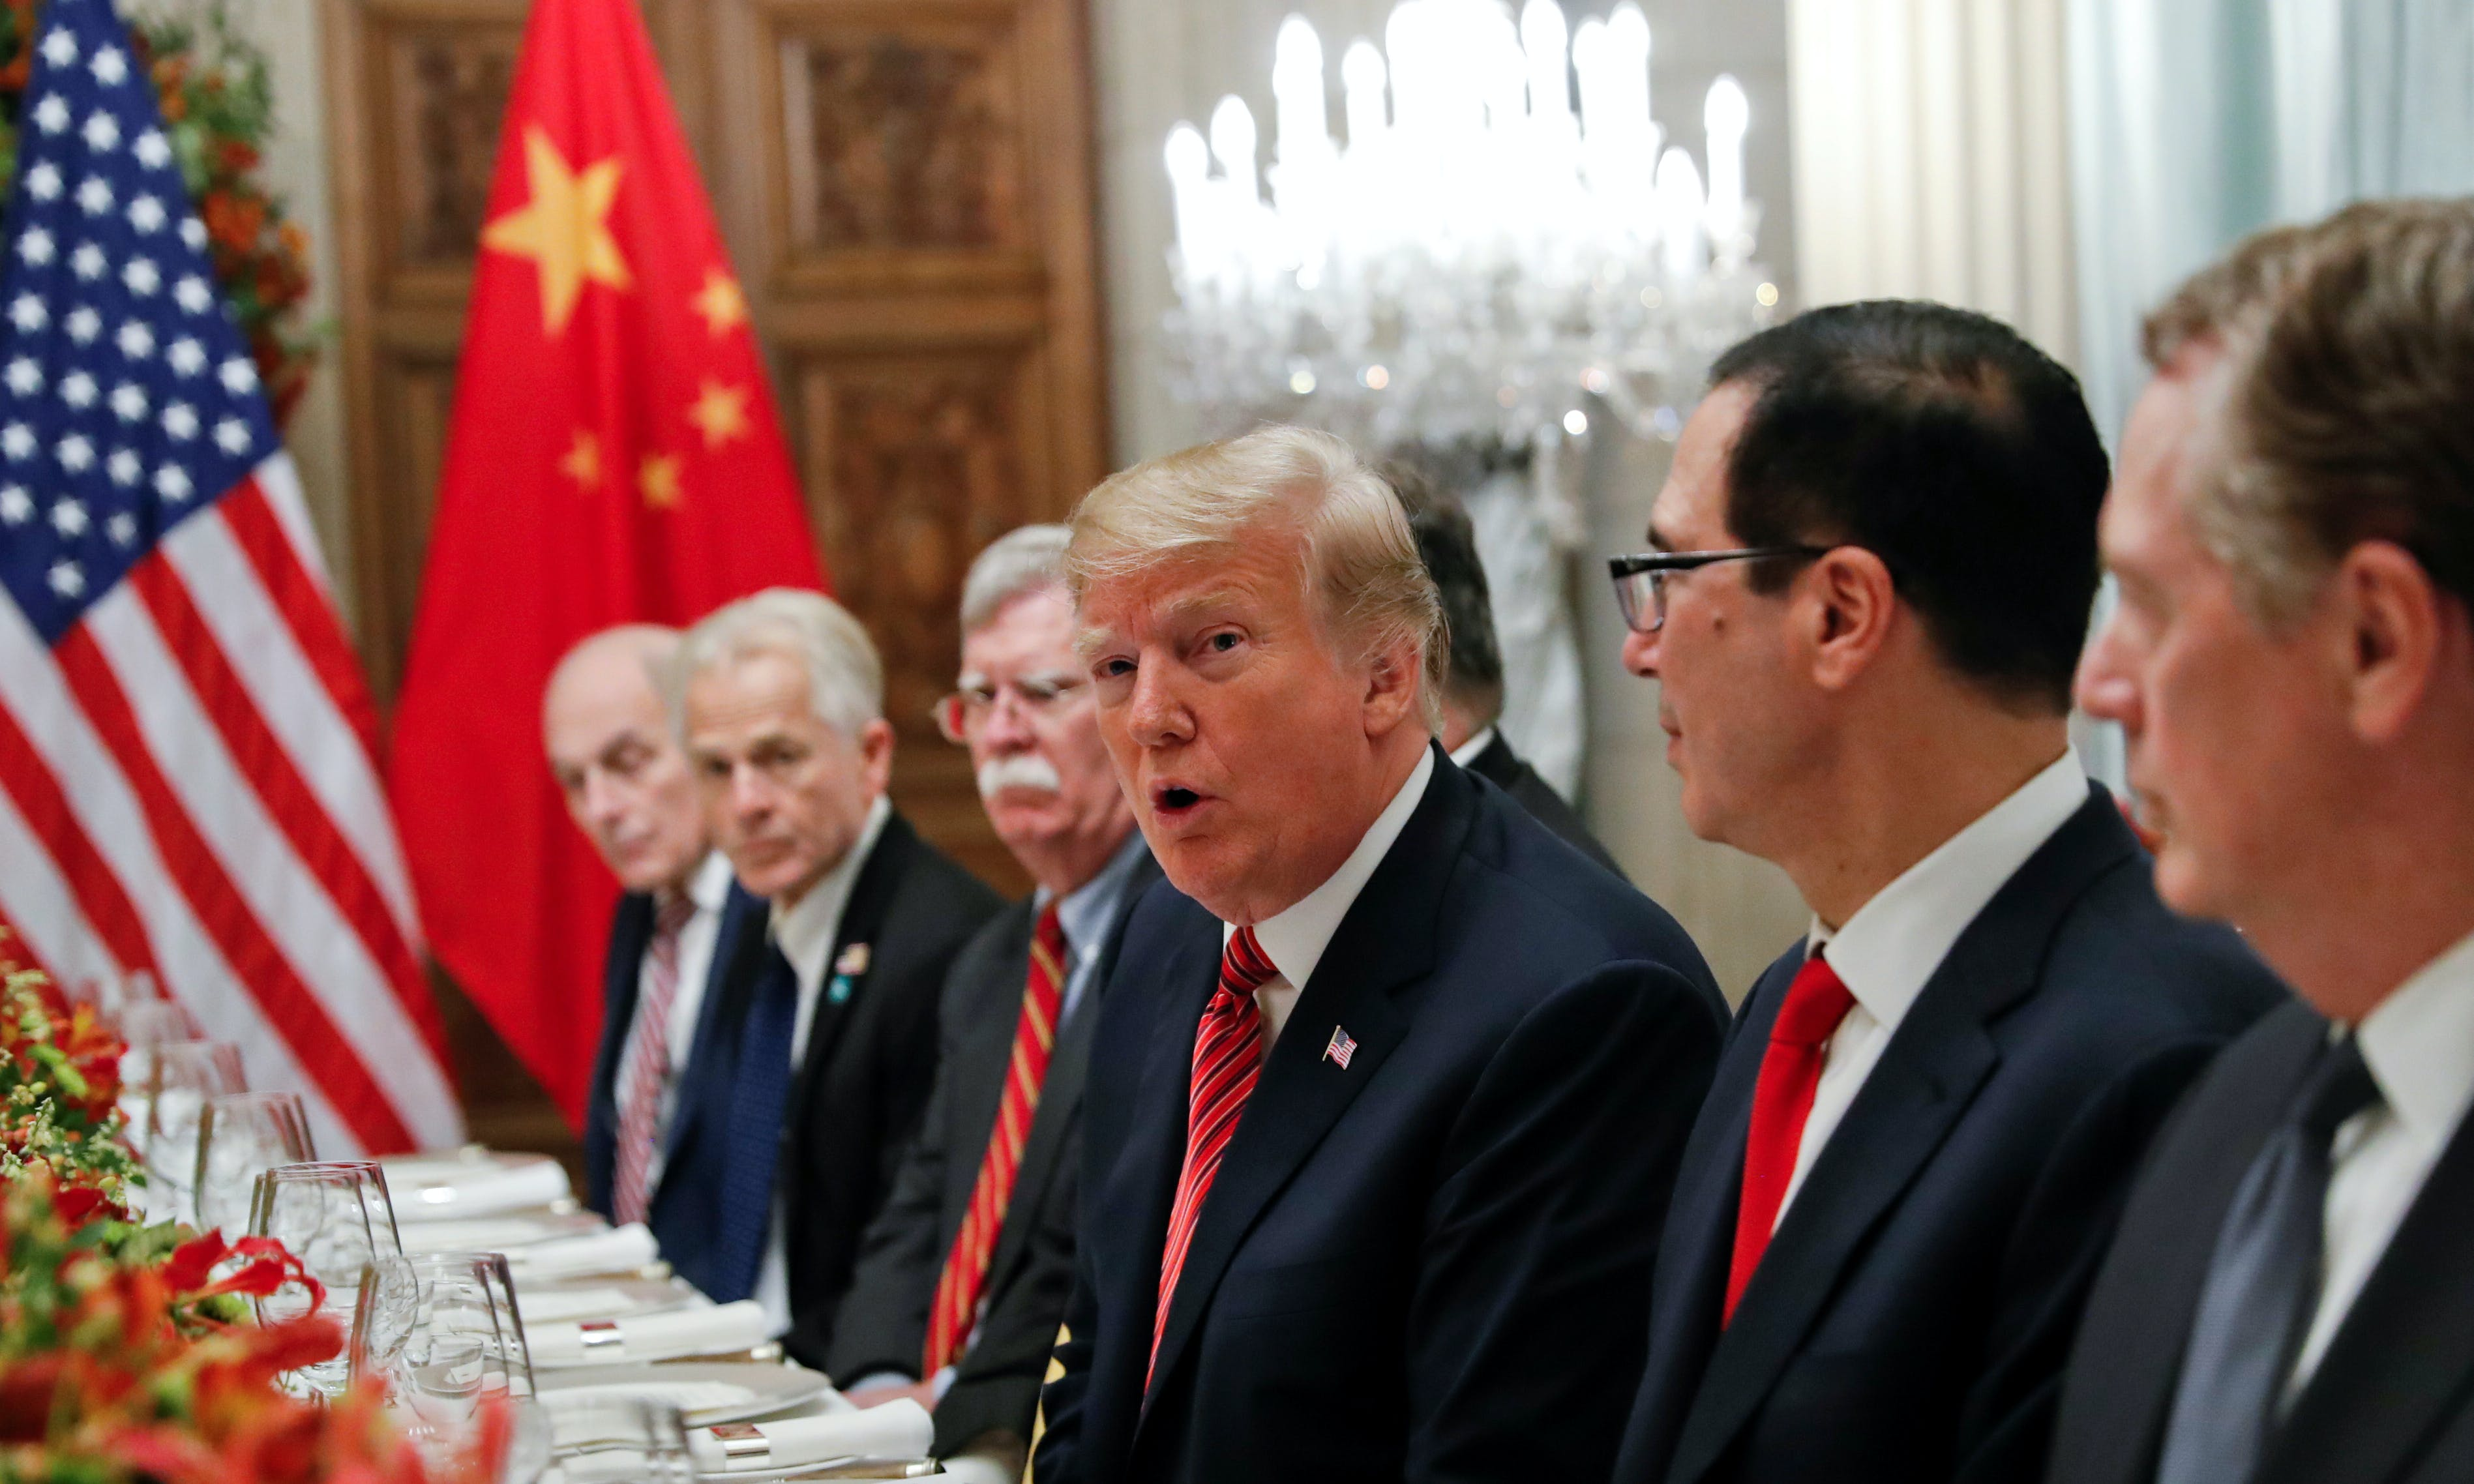 Xi and Trump's G20 Tariff Truce: The Trade War Is Far From Over